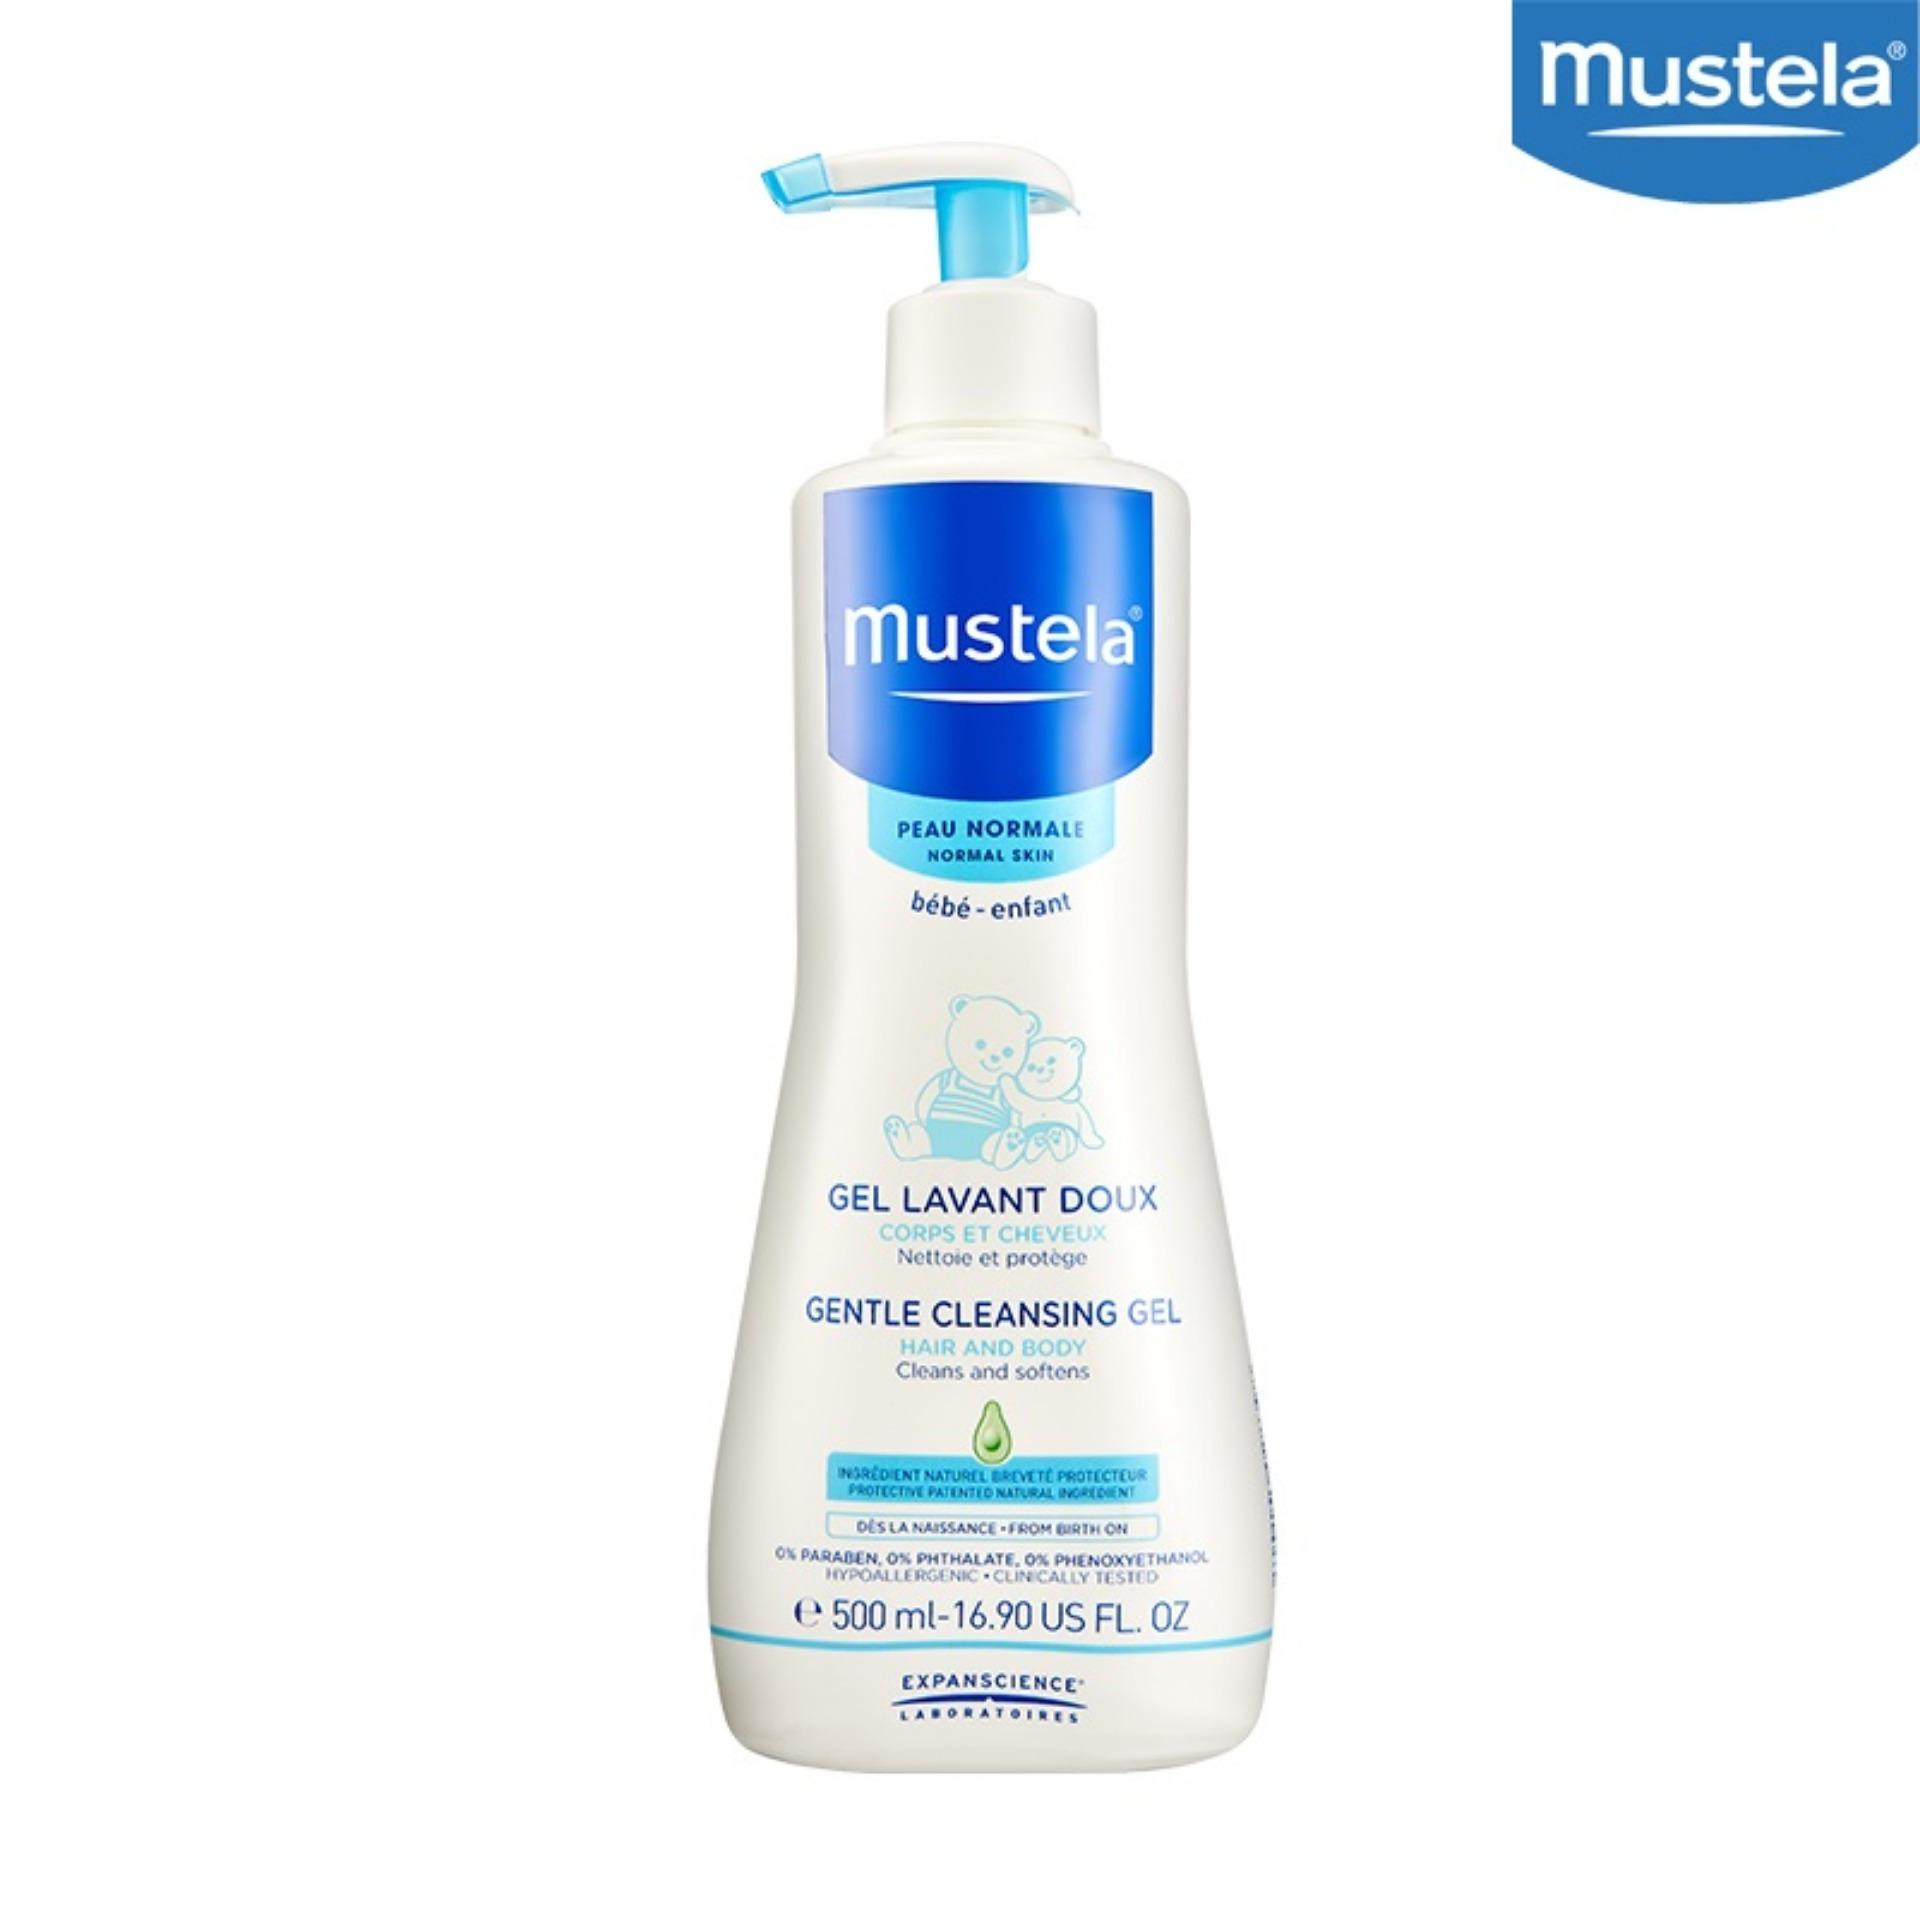 Mustela Gentle Cleansing Gel Hair And Body Wash 500Ml Intl Price Comparison